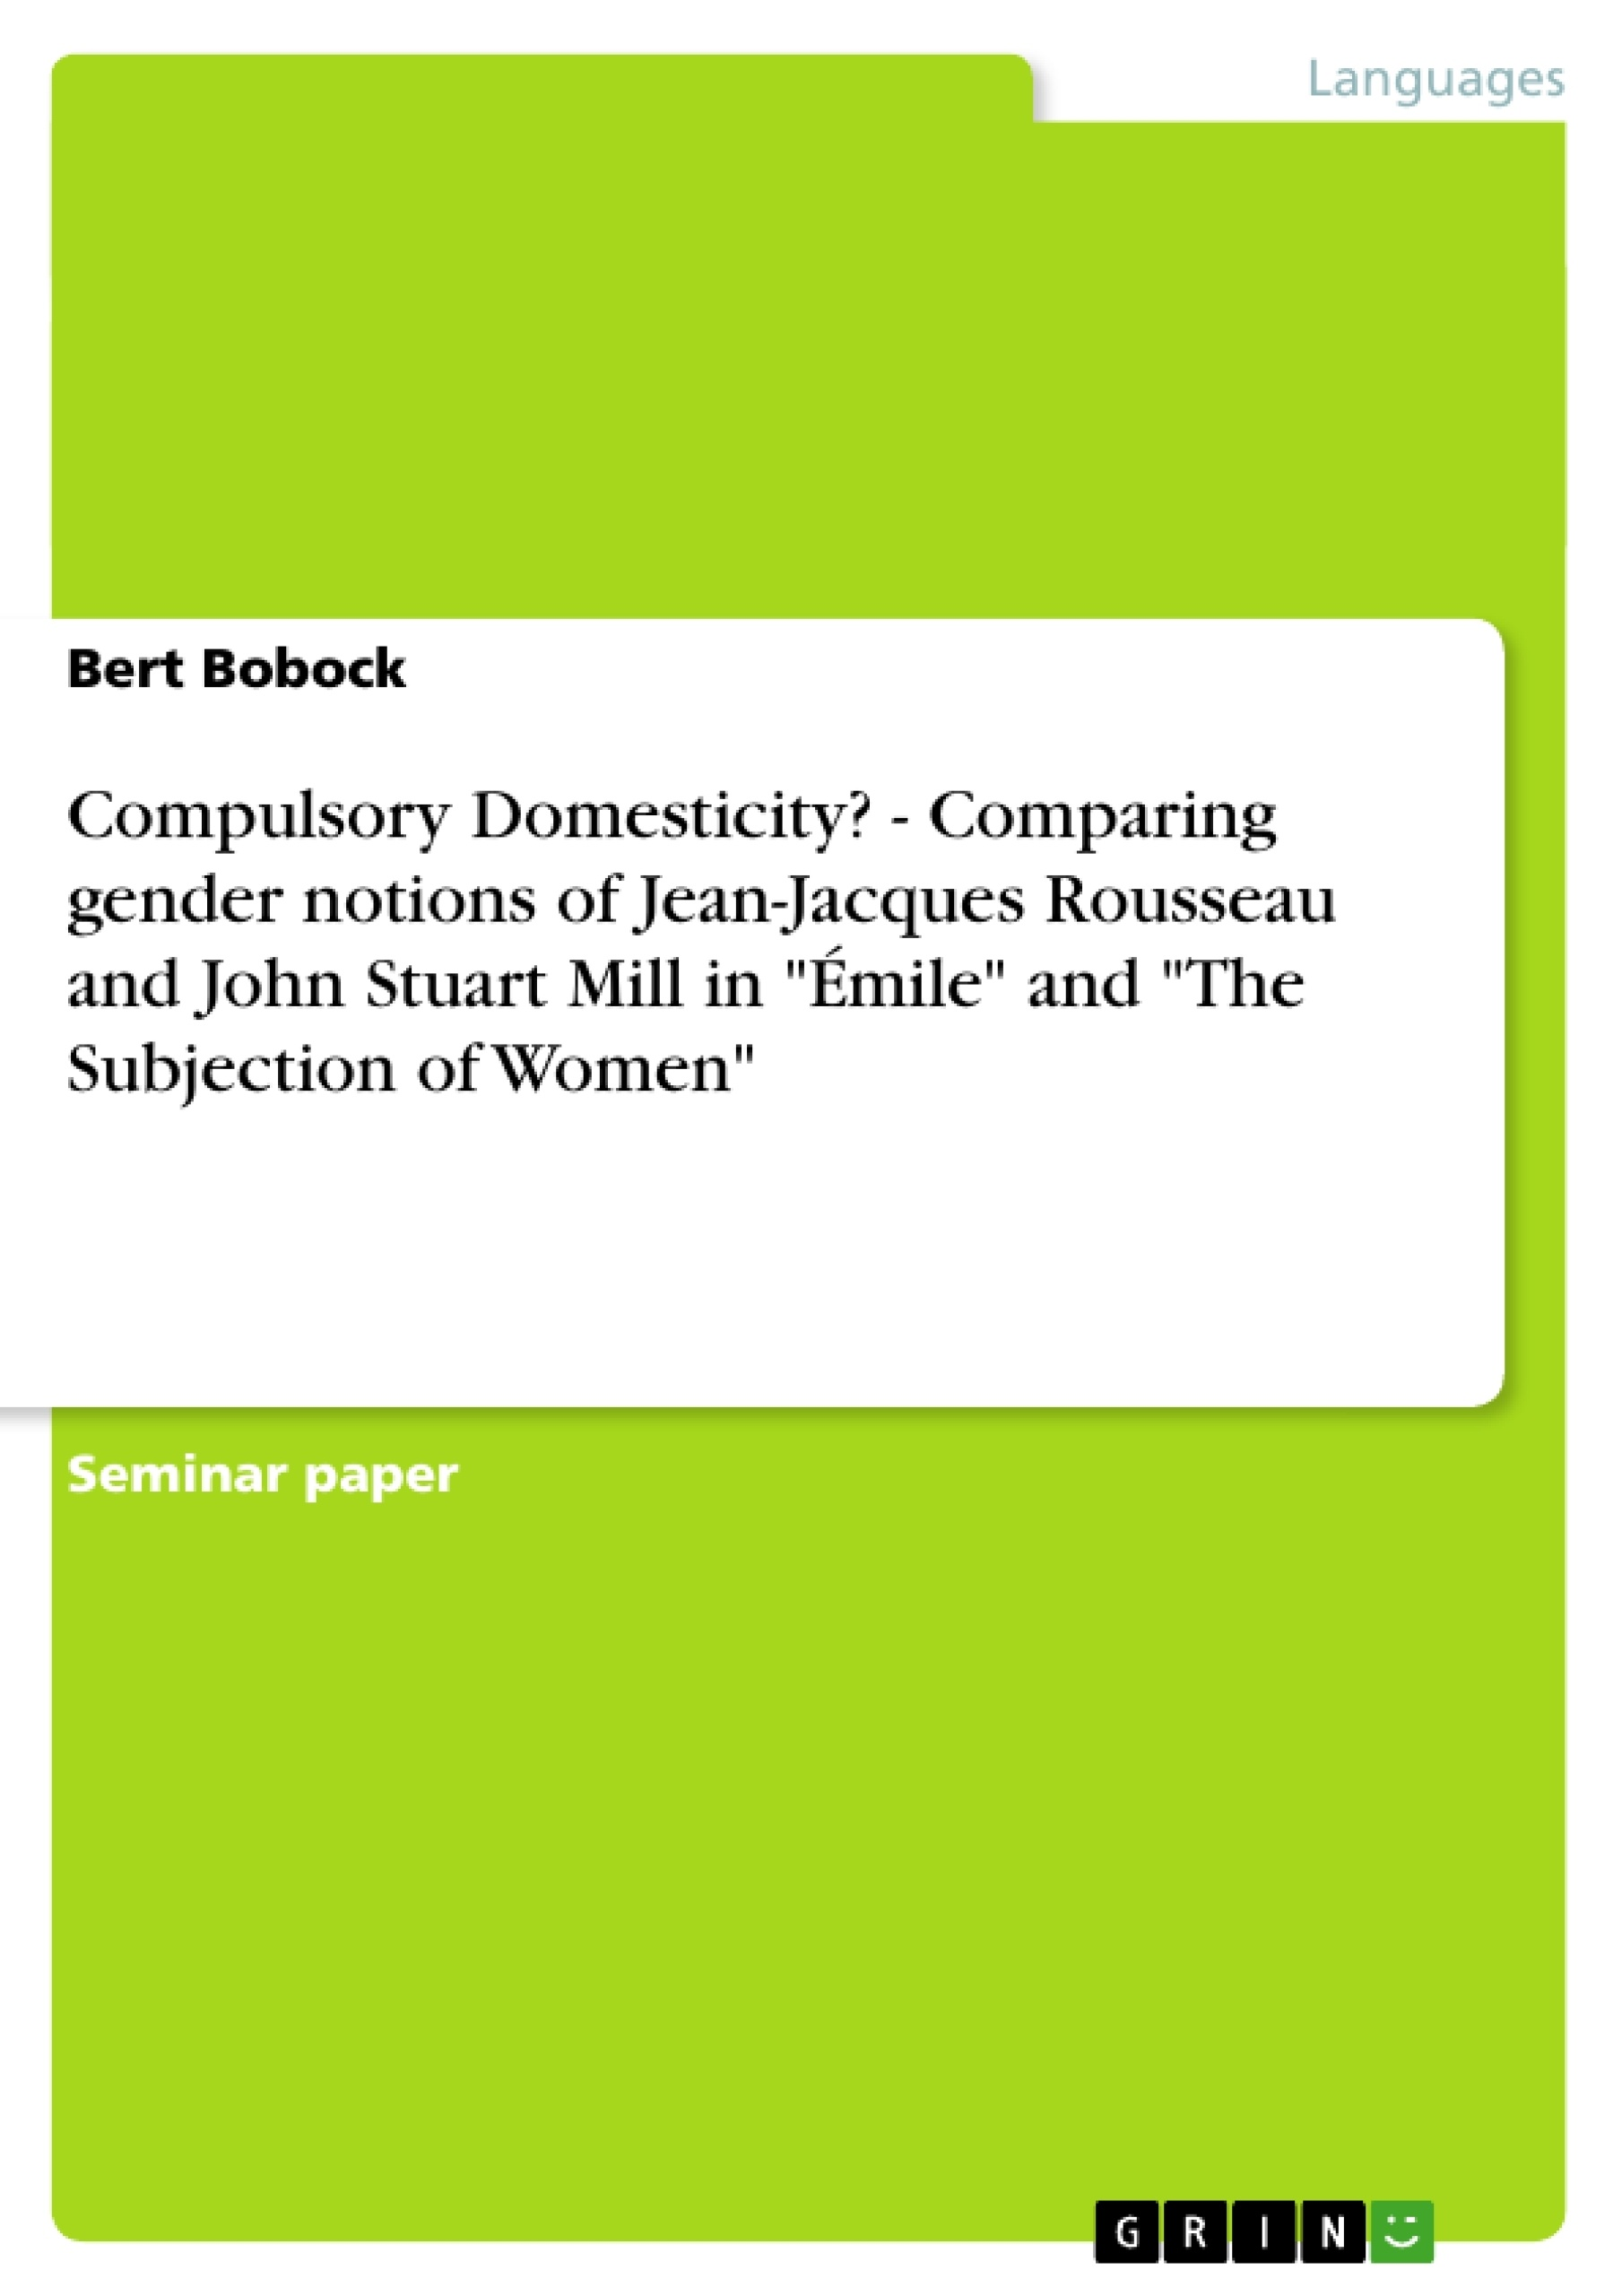 """Title: Compulsory Domesticity? - Comparing gender notions of Jean-Jacques Rousseau and John Stuart Mill in """"Émile"""" and """"The Subjection of Women"""""""